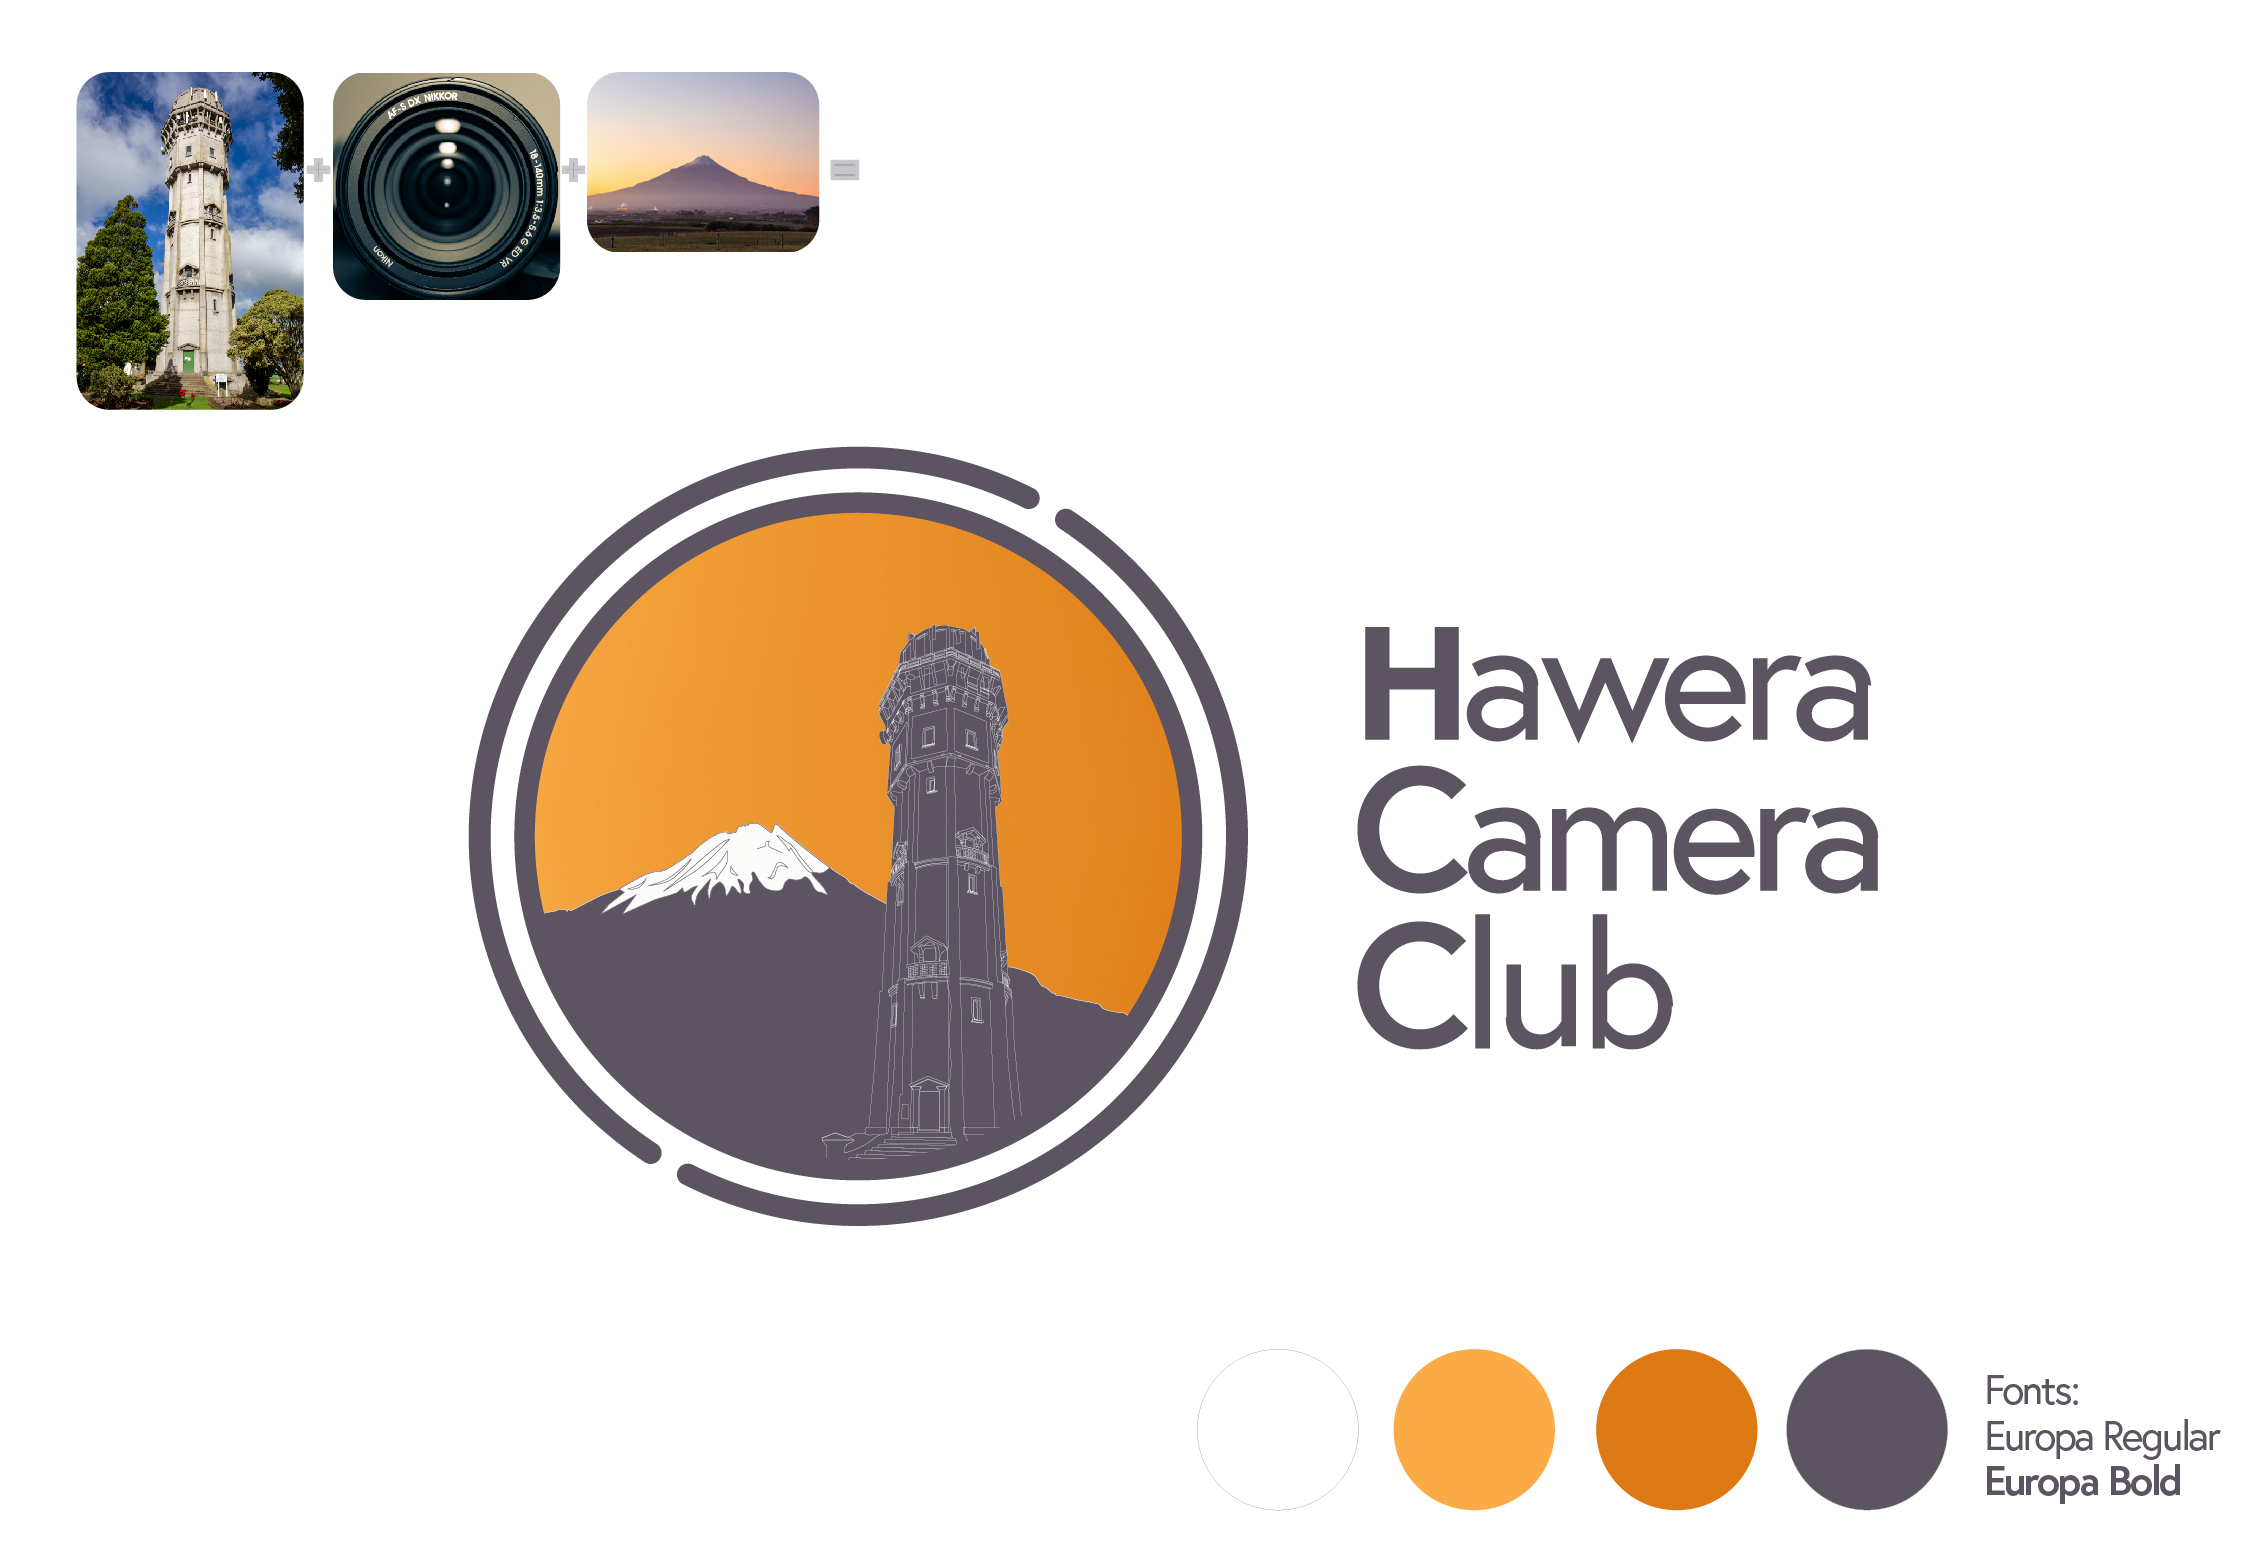 Hawera Camera Club Logo Design